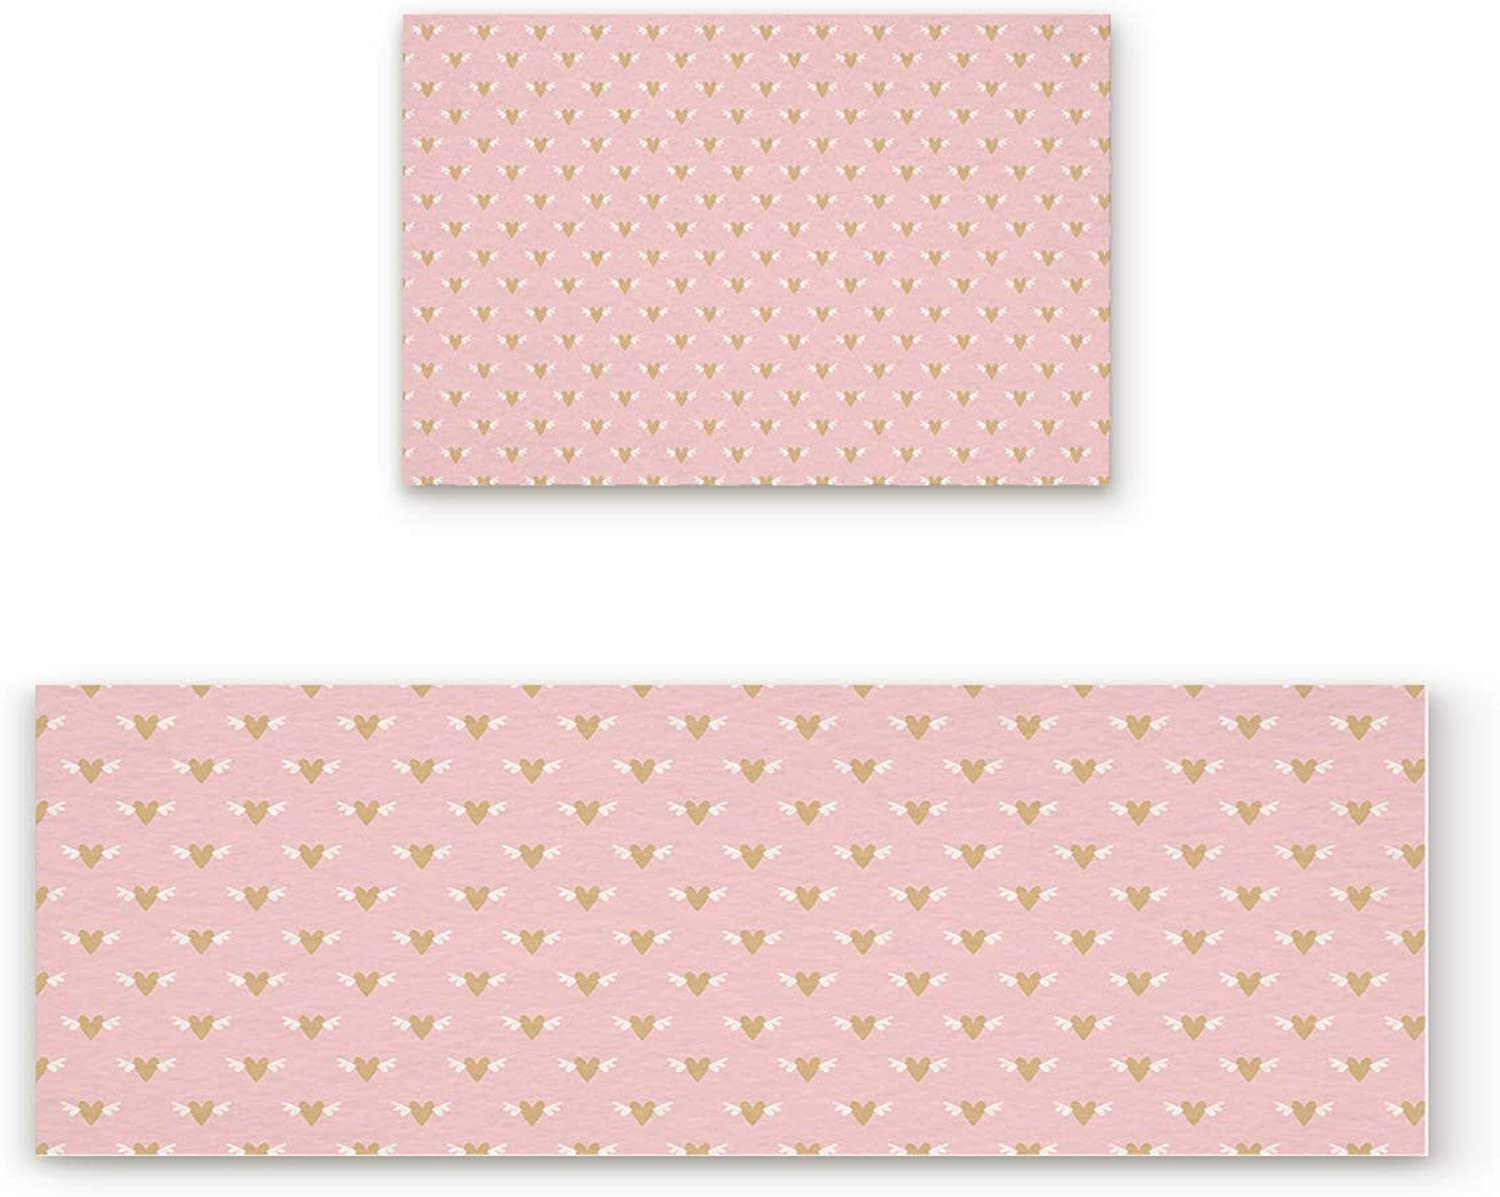 Aomike 2 Piece Non-Slip Kitchen Mat Rubber Backing Doormat Hearts with Wings on Pink Background Runner Rug Set, Hallway Living Room Balcony Bathroom Carpet Sets (19.7  x 31.5 +19.7  x 47.2 )